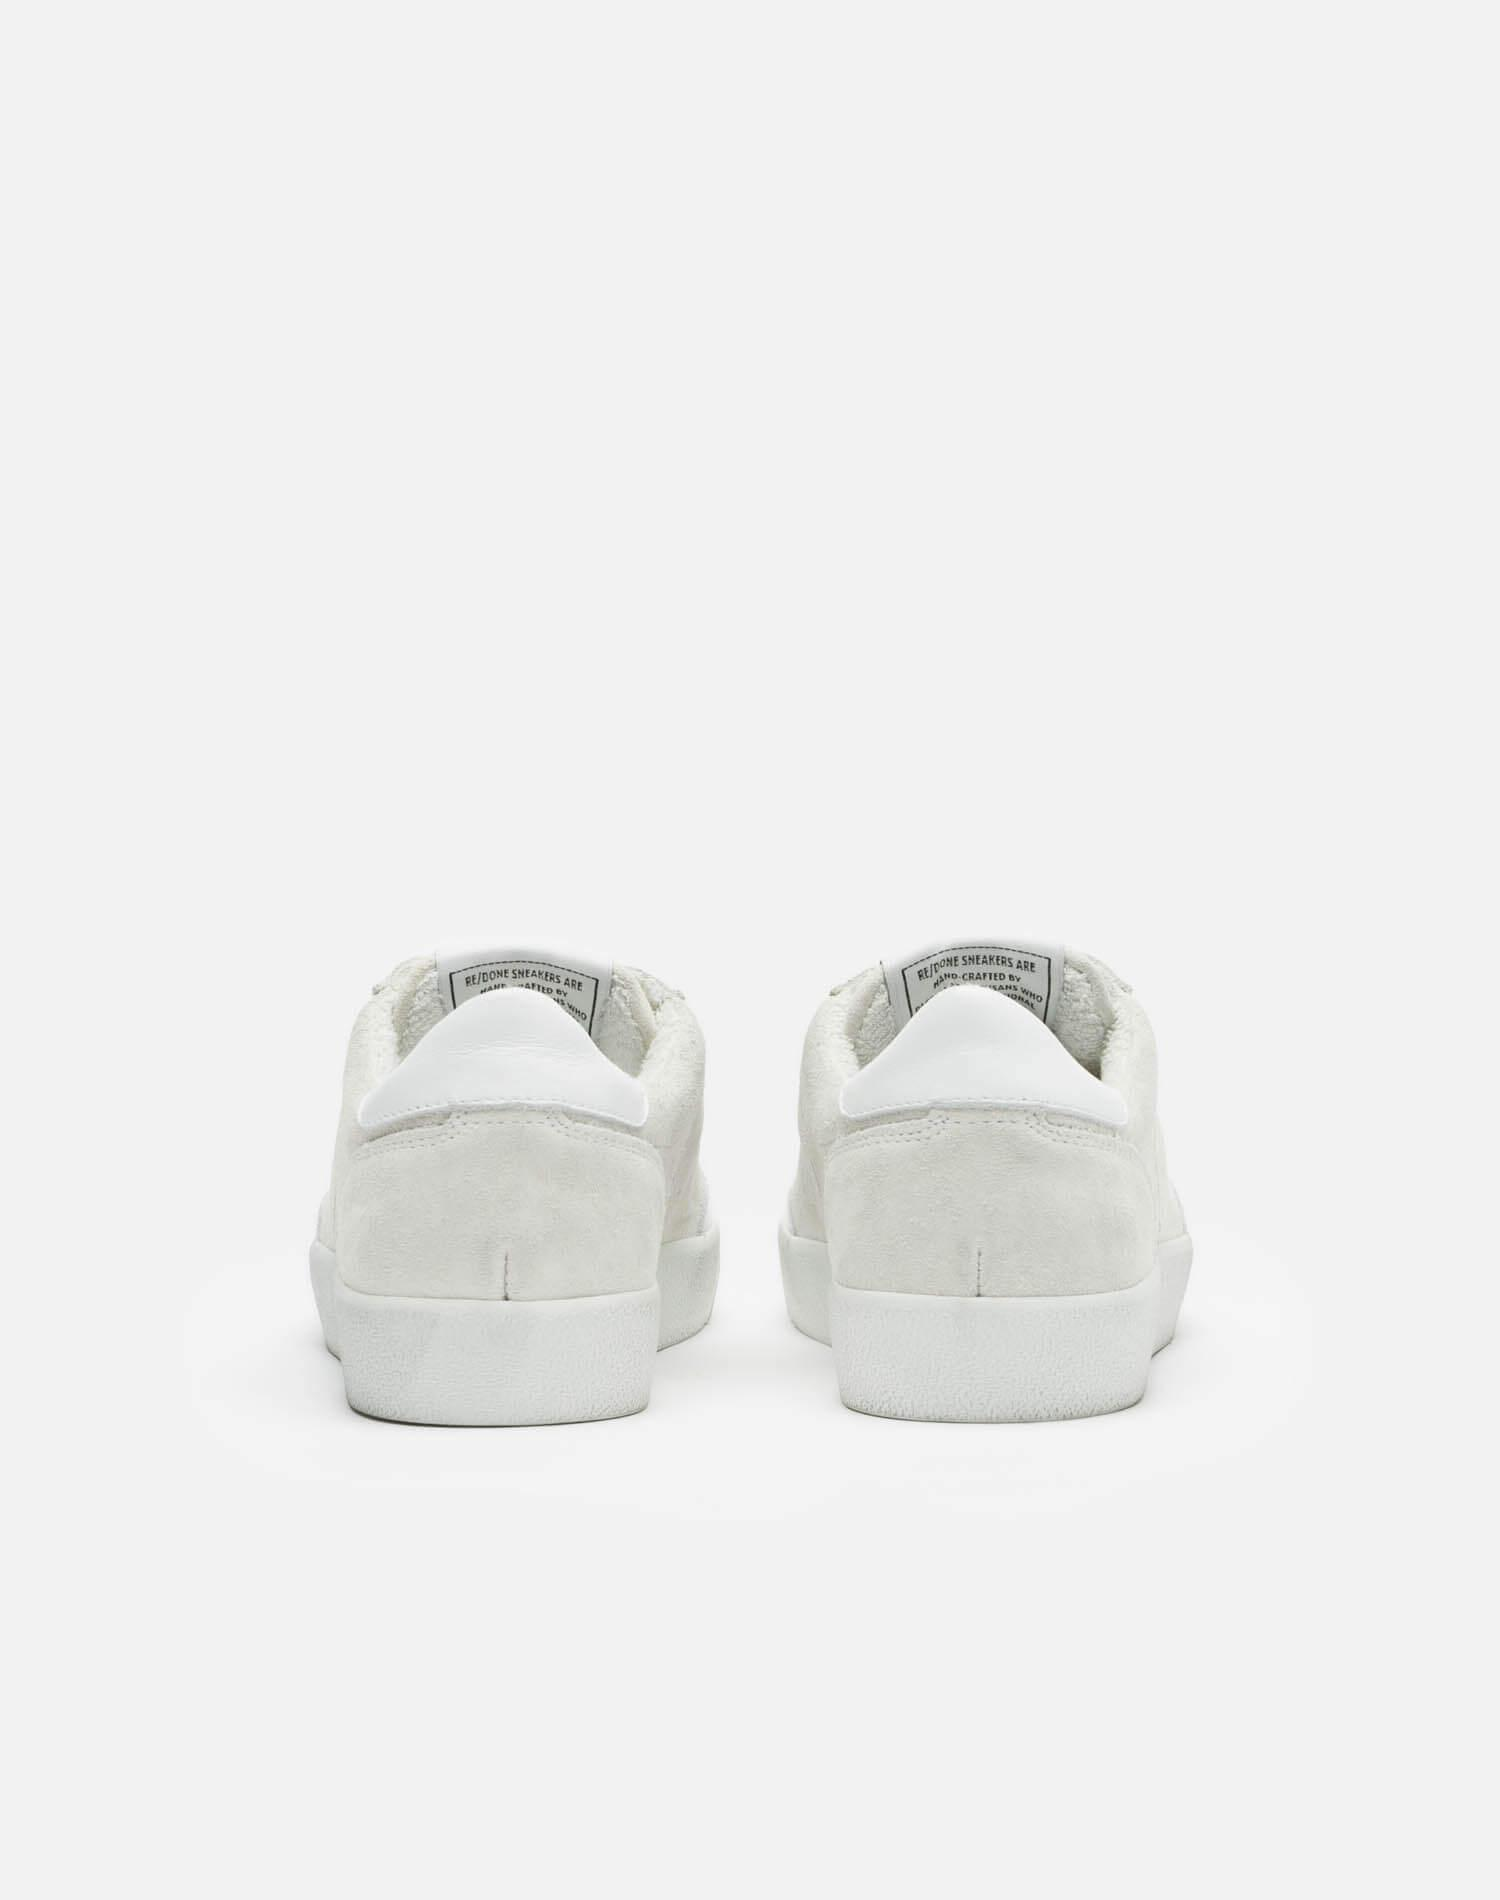 90s Skate Shoe - White Suede 3